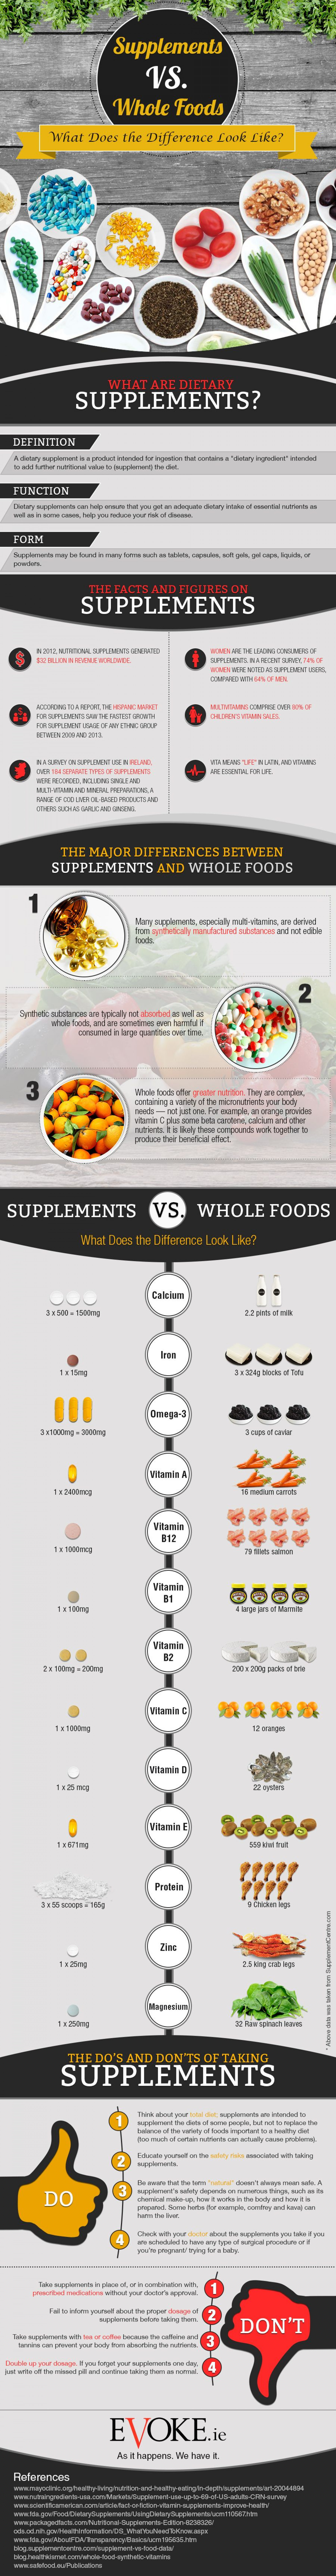 Supplements vs. Whole Foods: What Does the Difference Look Like? Infographic